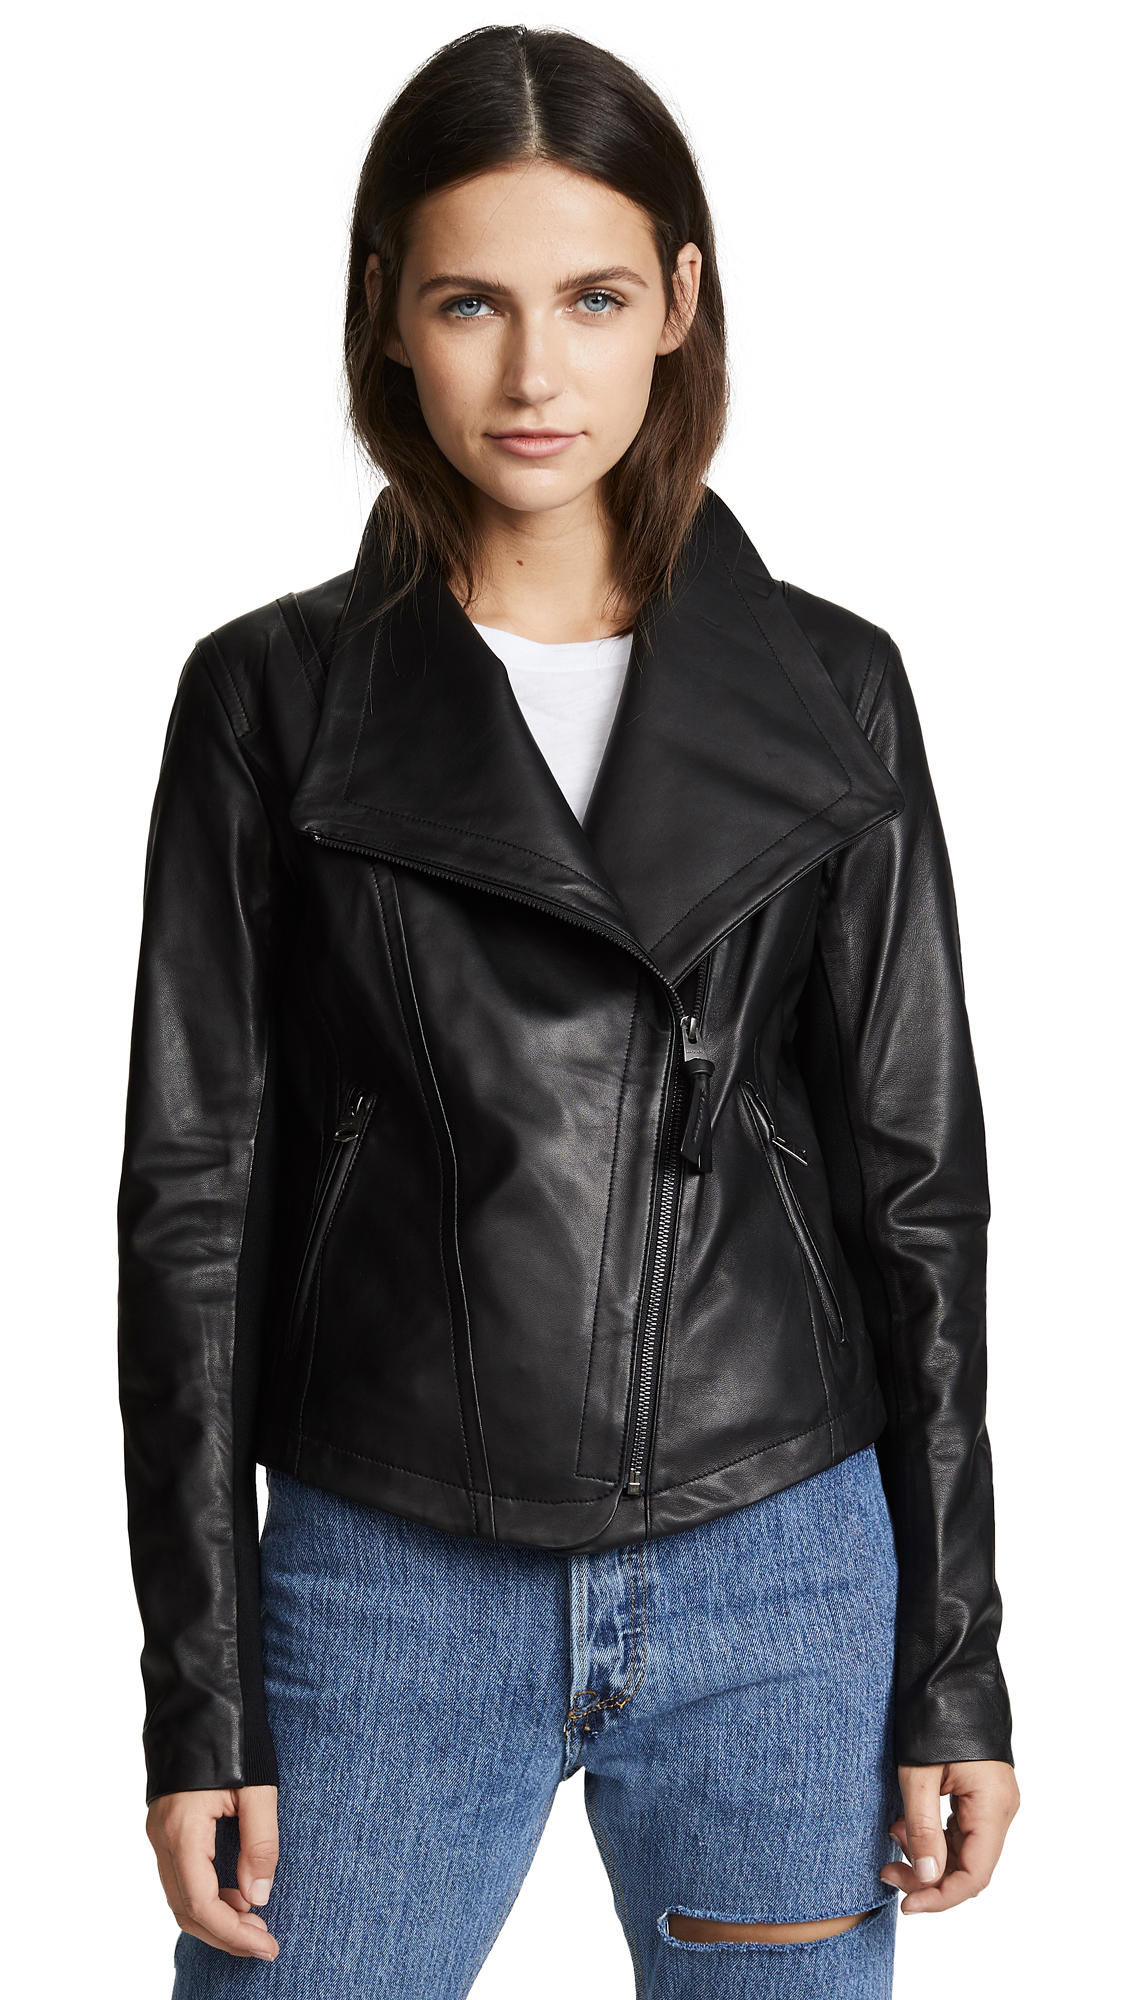 Mackage Pina Leather Jacket In Black